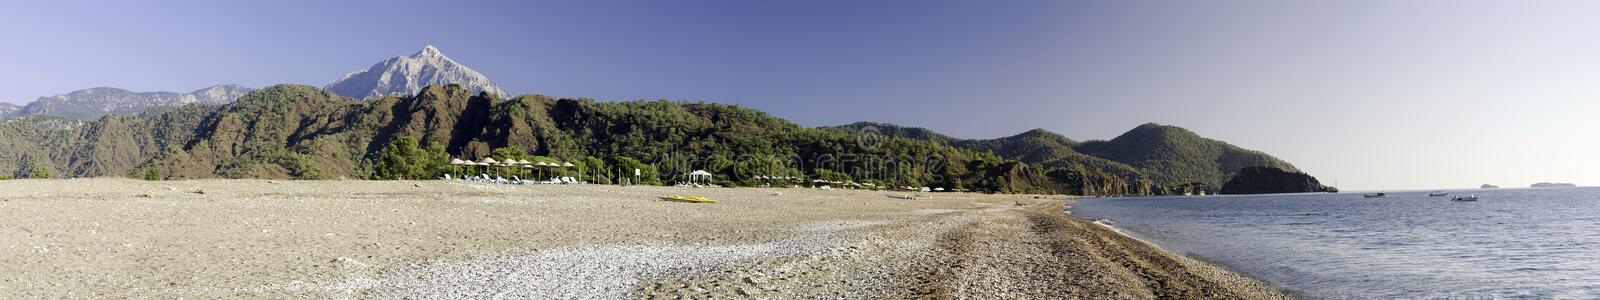 Download Sea coast panorama stock photo. Image of clear, high, rocky - 6959004